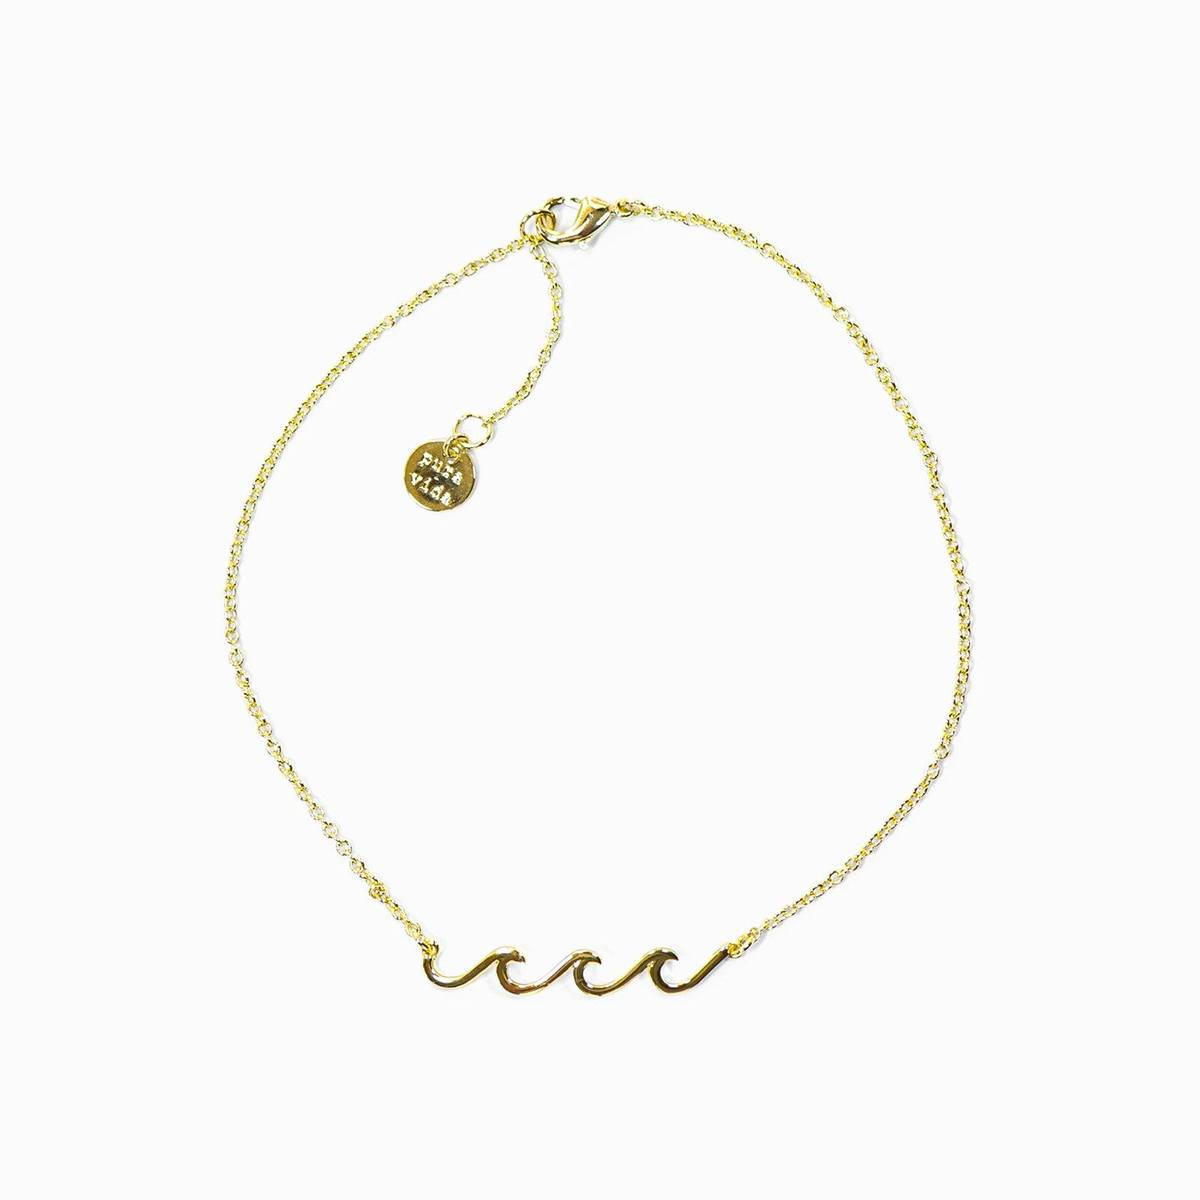 Gold Delicate Wave Anklet by Pura Vida